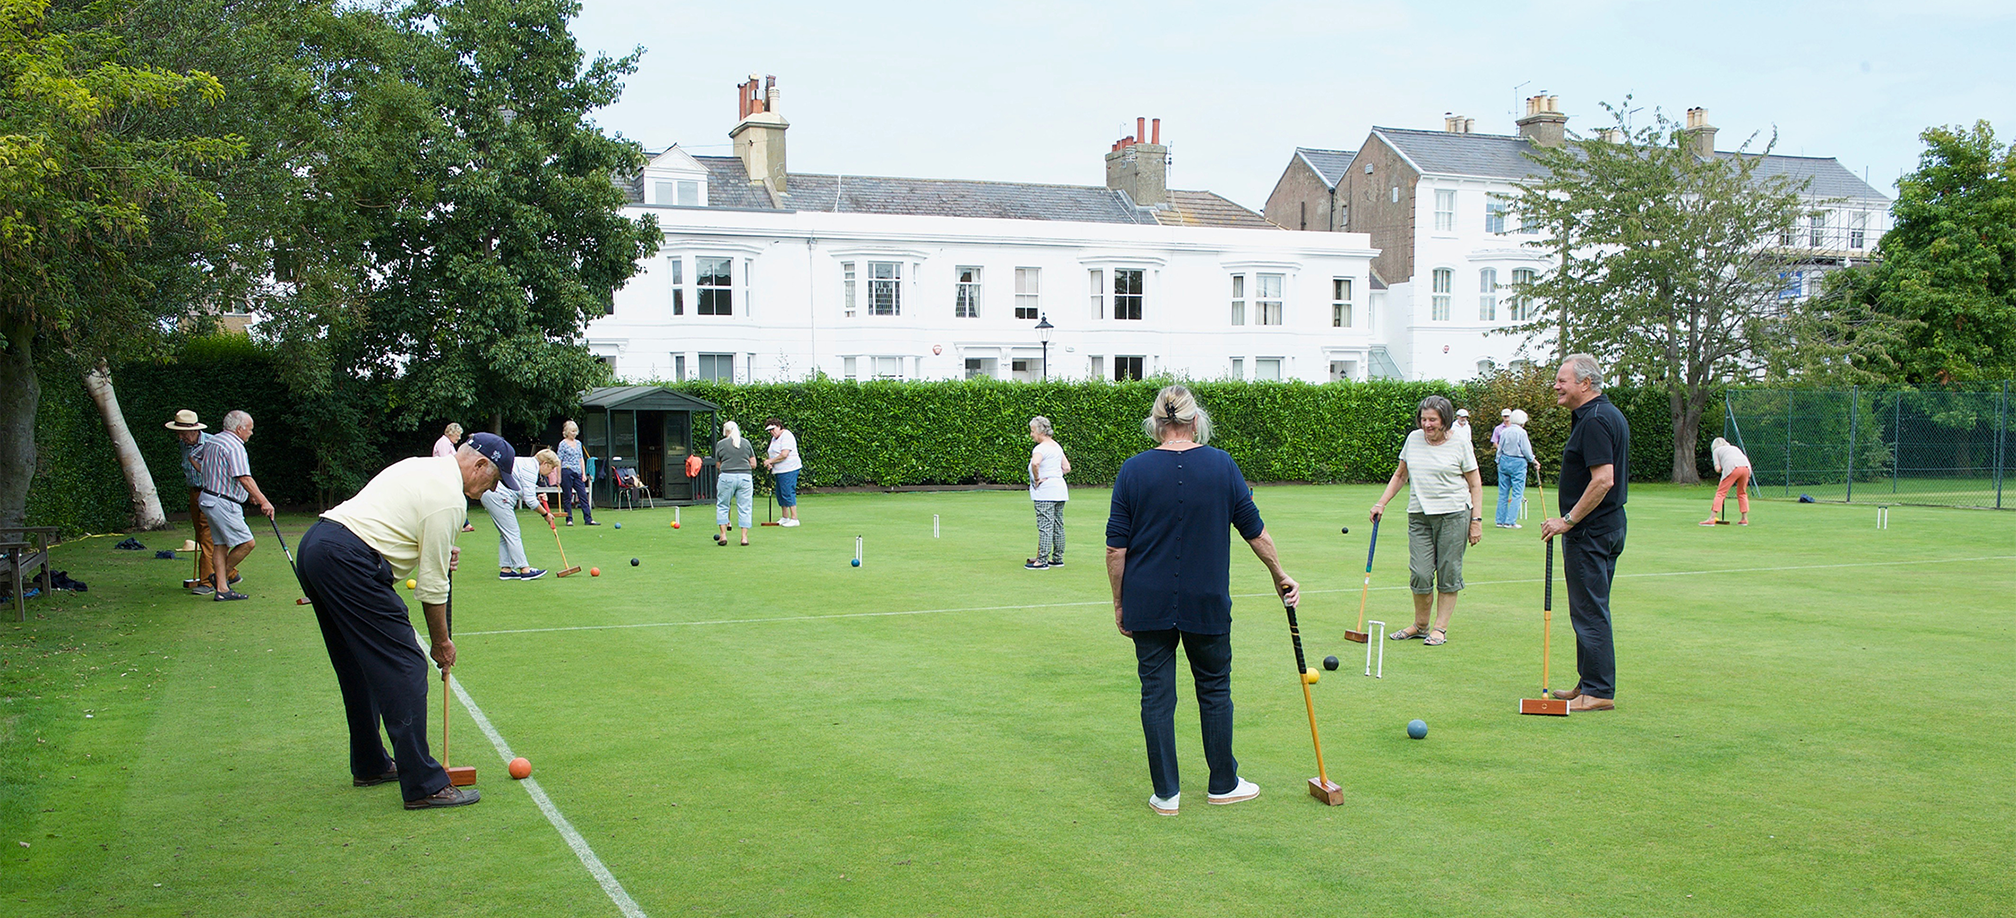 Croquet at walmer lawn tennis club